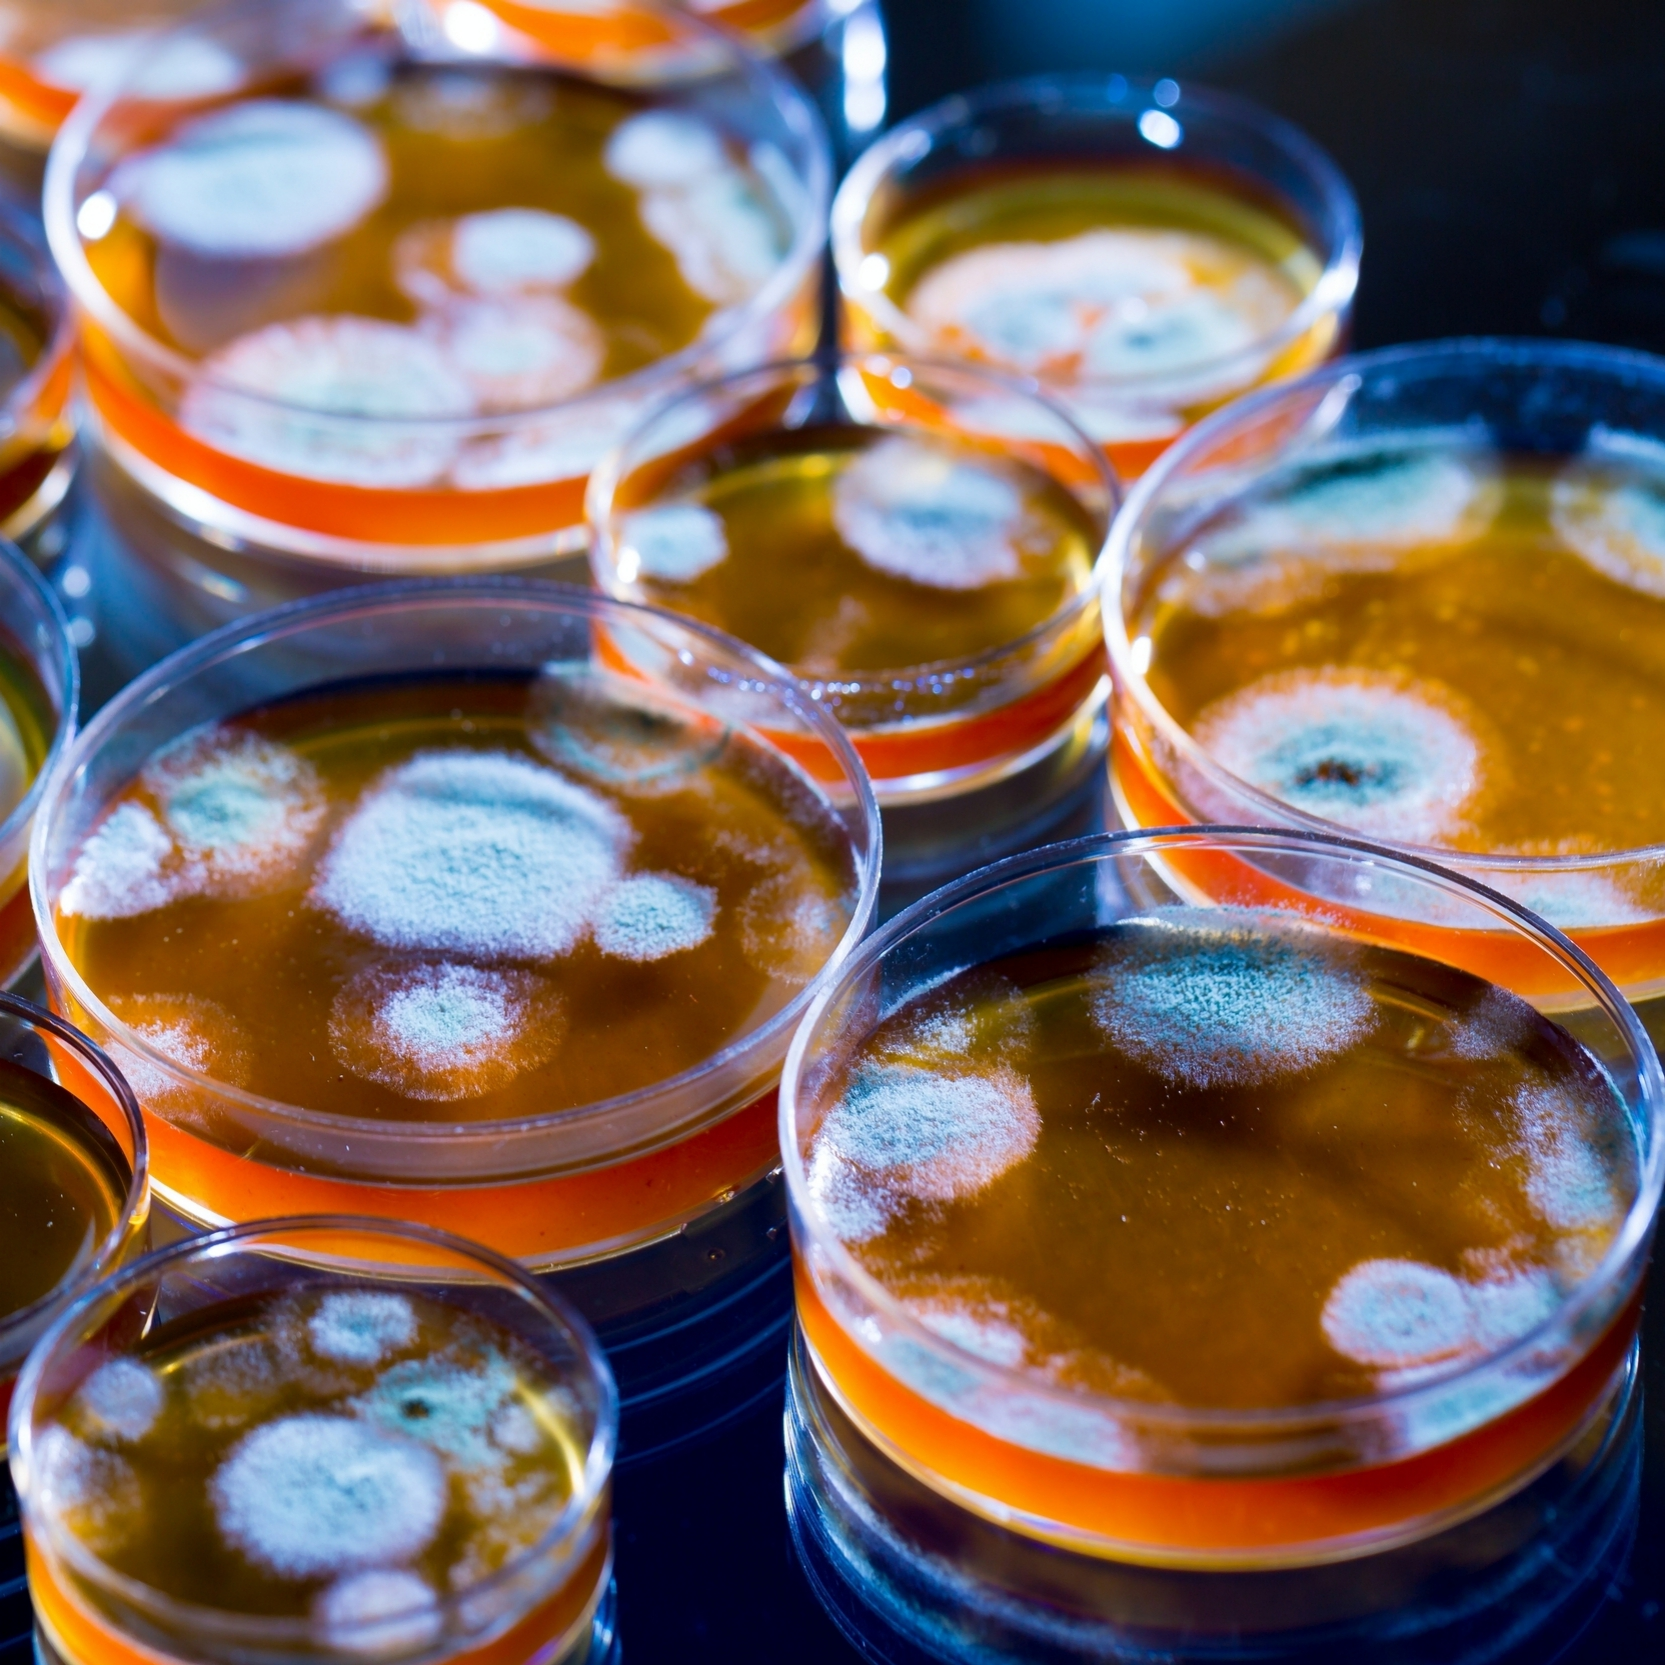 Penicillin fungi in petri dishes in a research lab